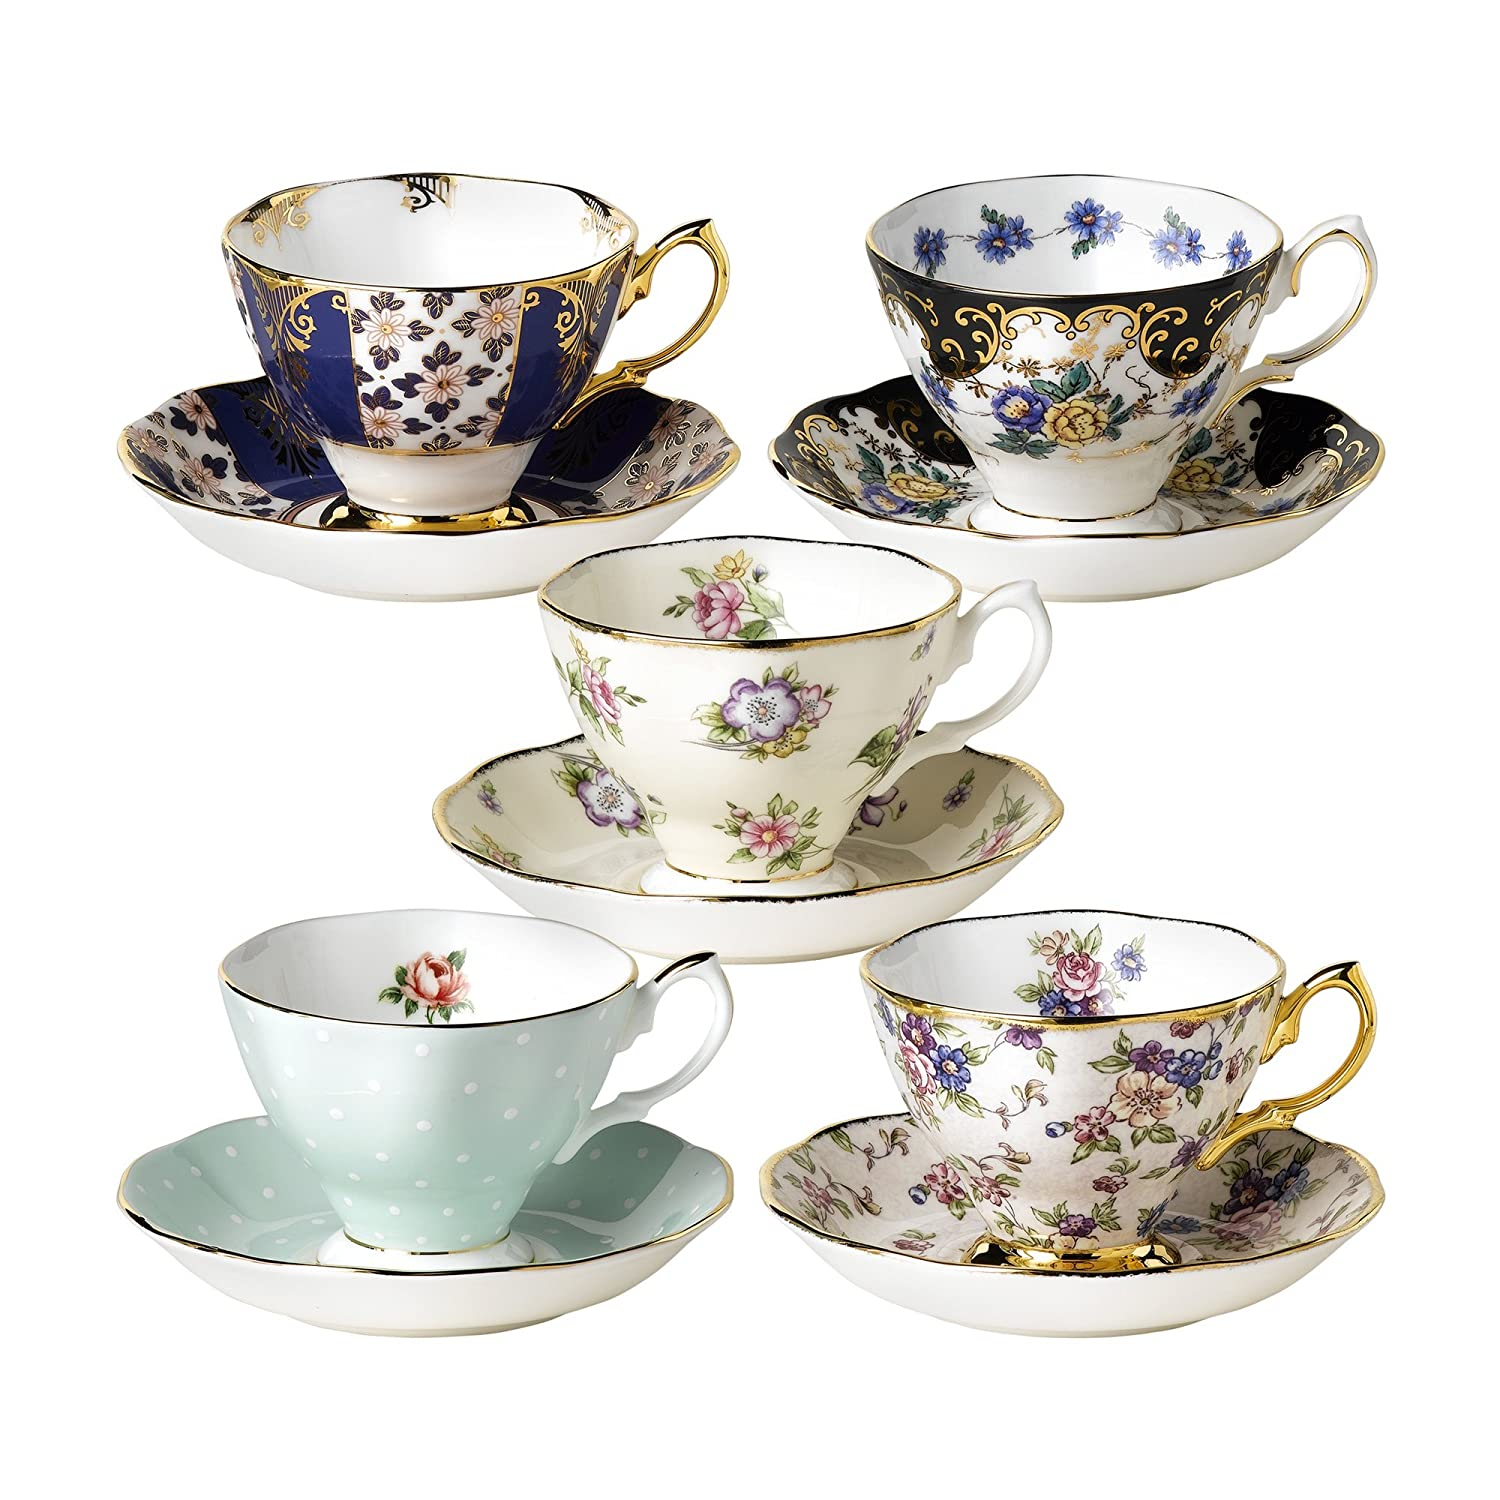 amazoncom  royal albert  years of royal albert teacups and  - amazoncom  royal albert  years of royal albert teacups and saucers set of  teacup with saucer cup  saucer sets